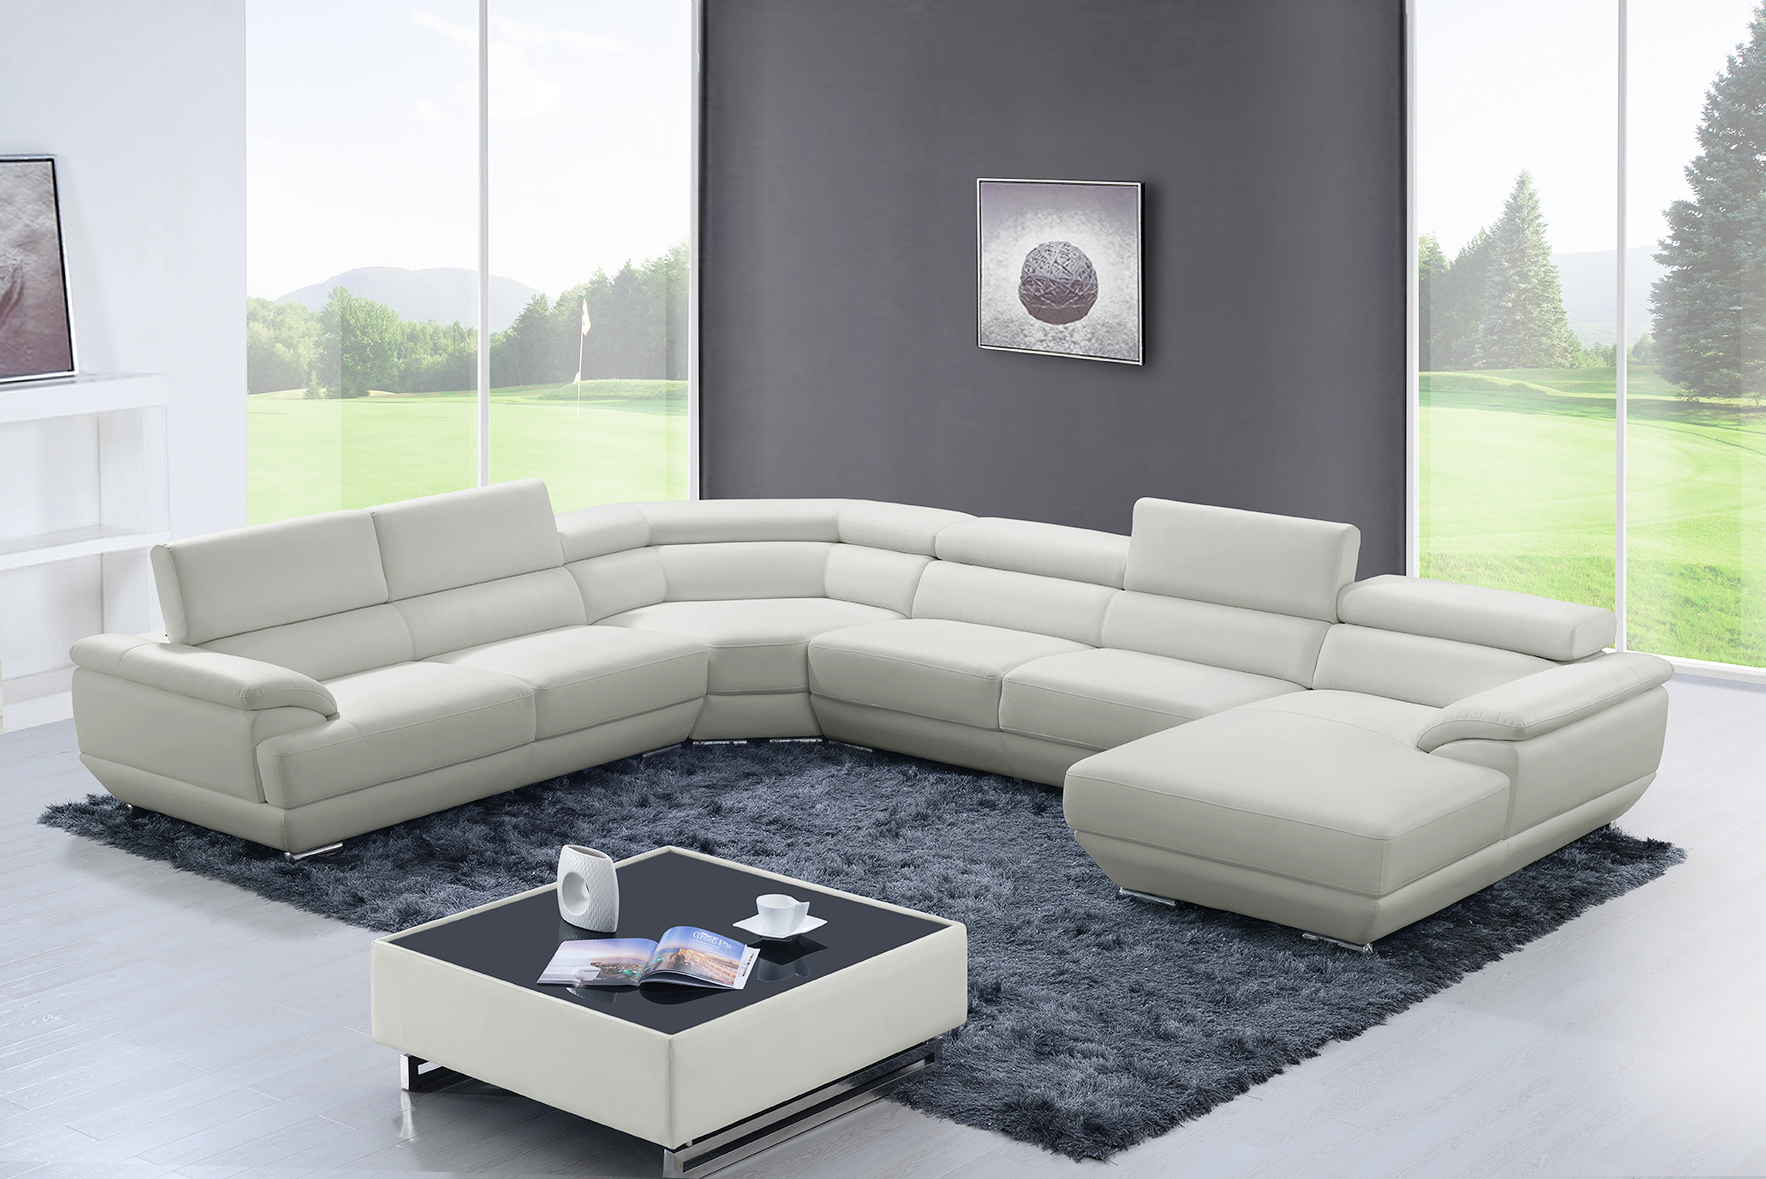 430 Sectional Off White, Sectionals, Living Room Furniture Within Sectional Sofas In White (View 3 of 15)